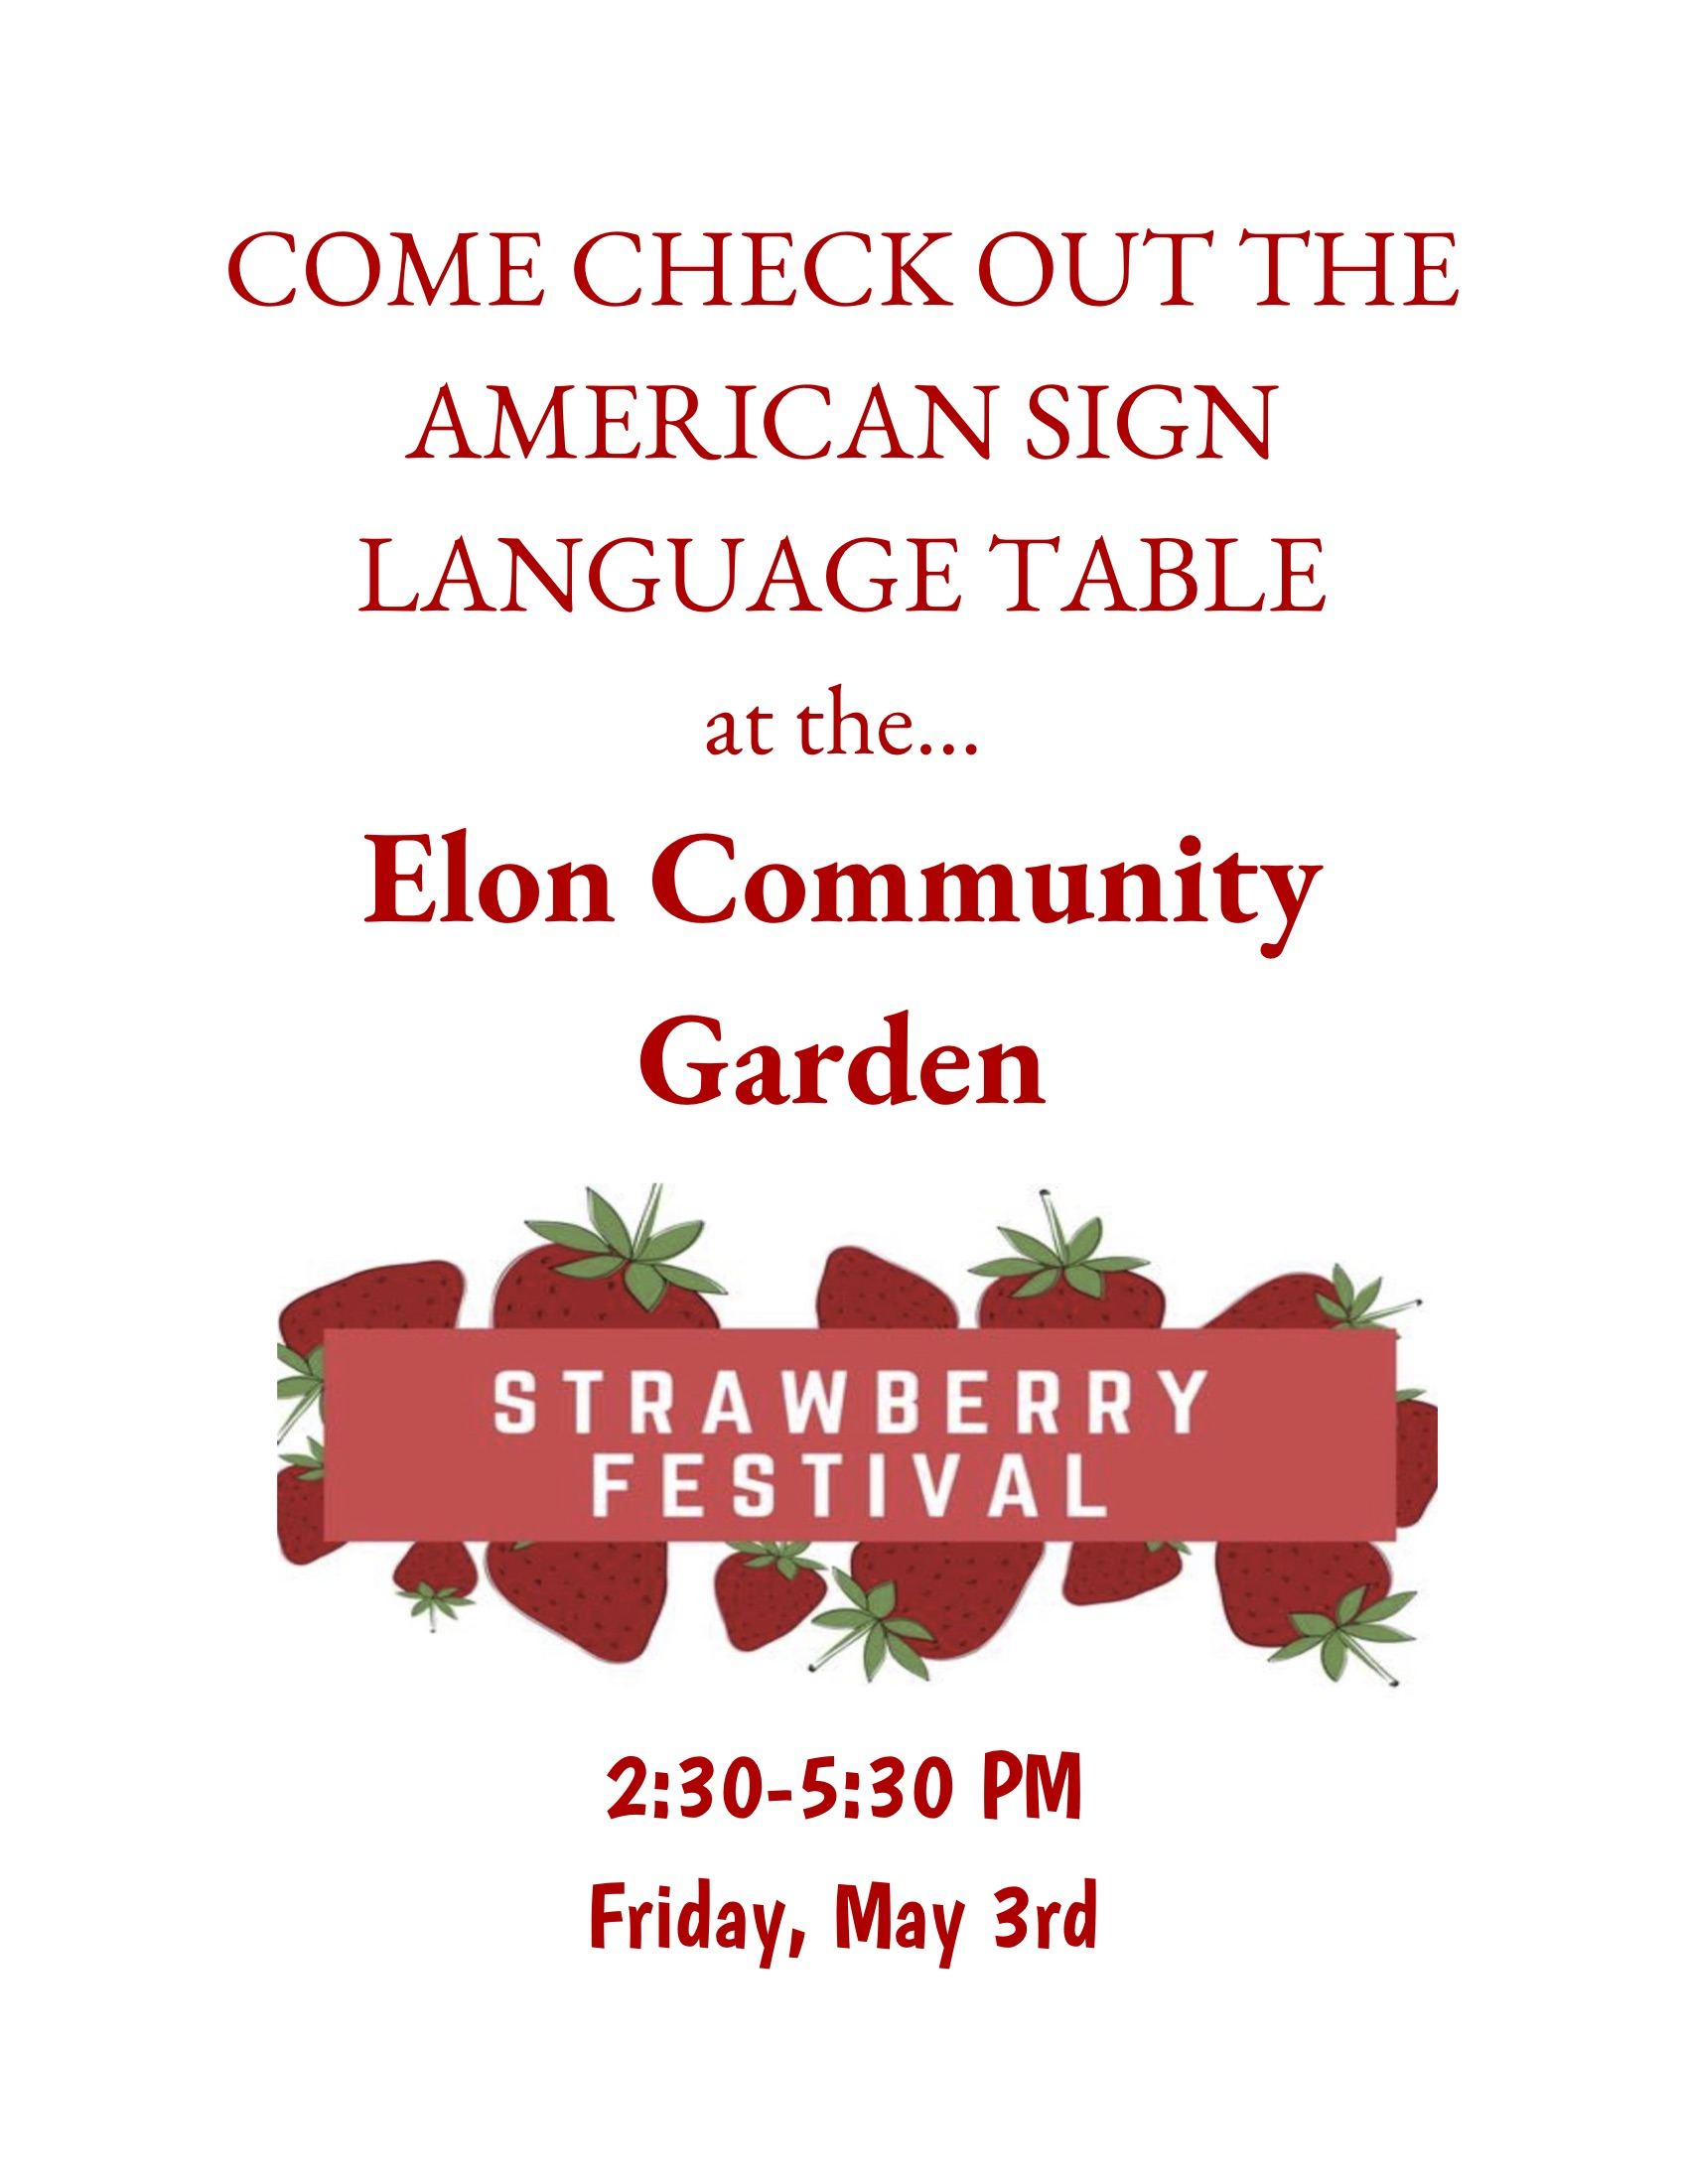 Strawberry Festival Flier.jpg